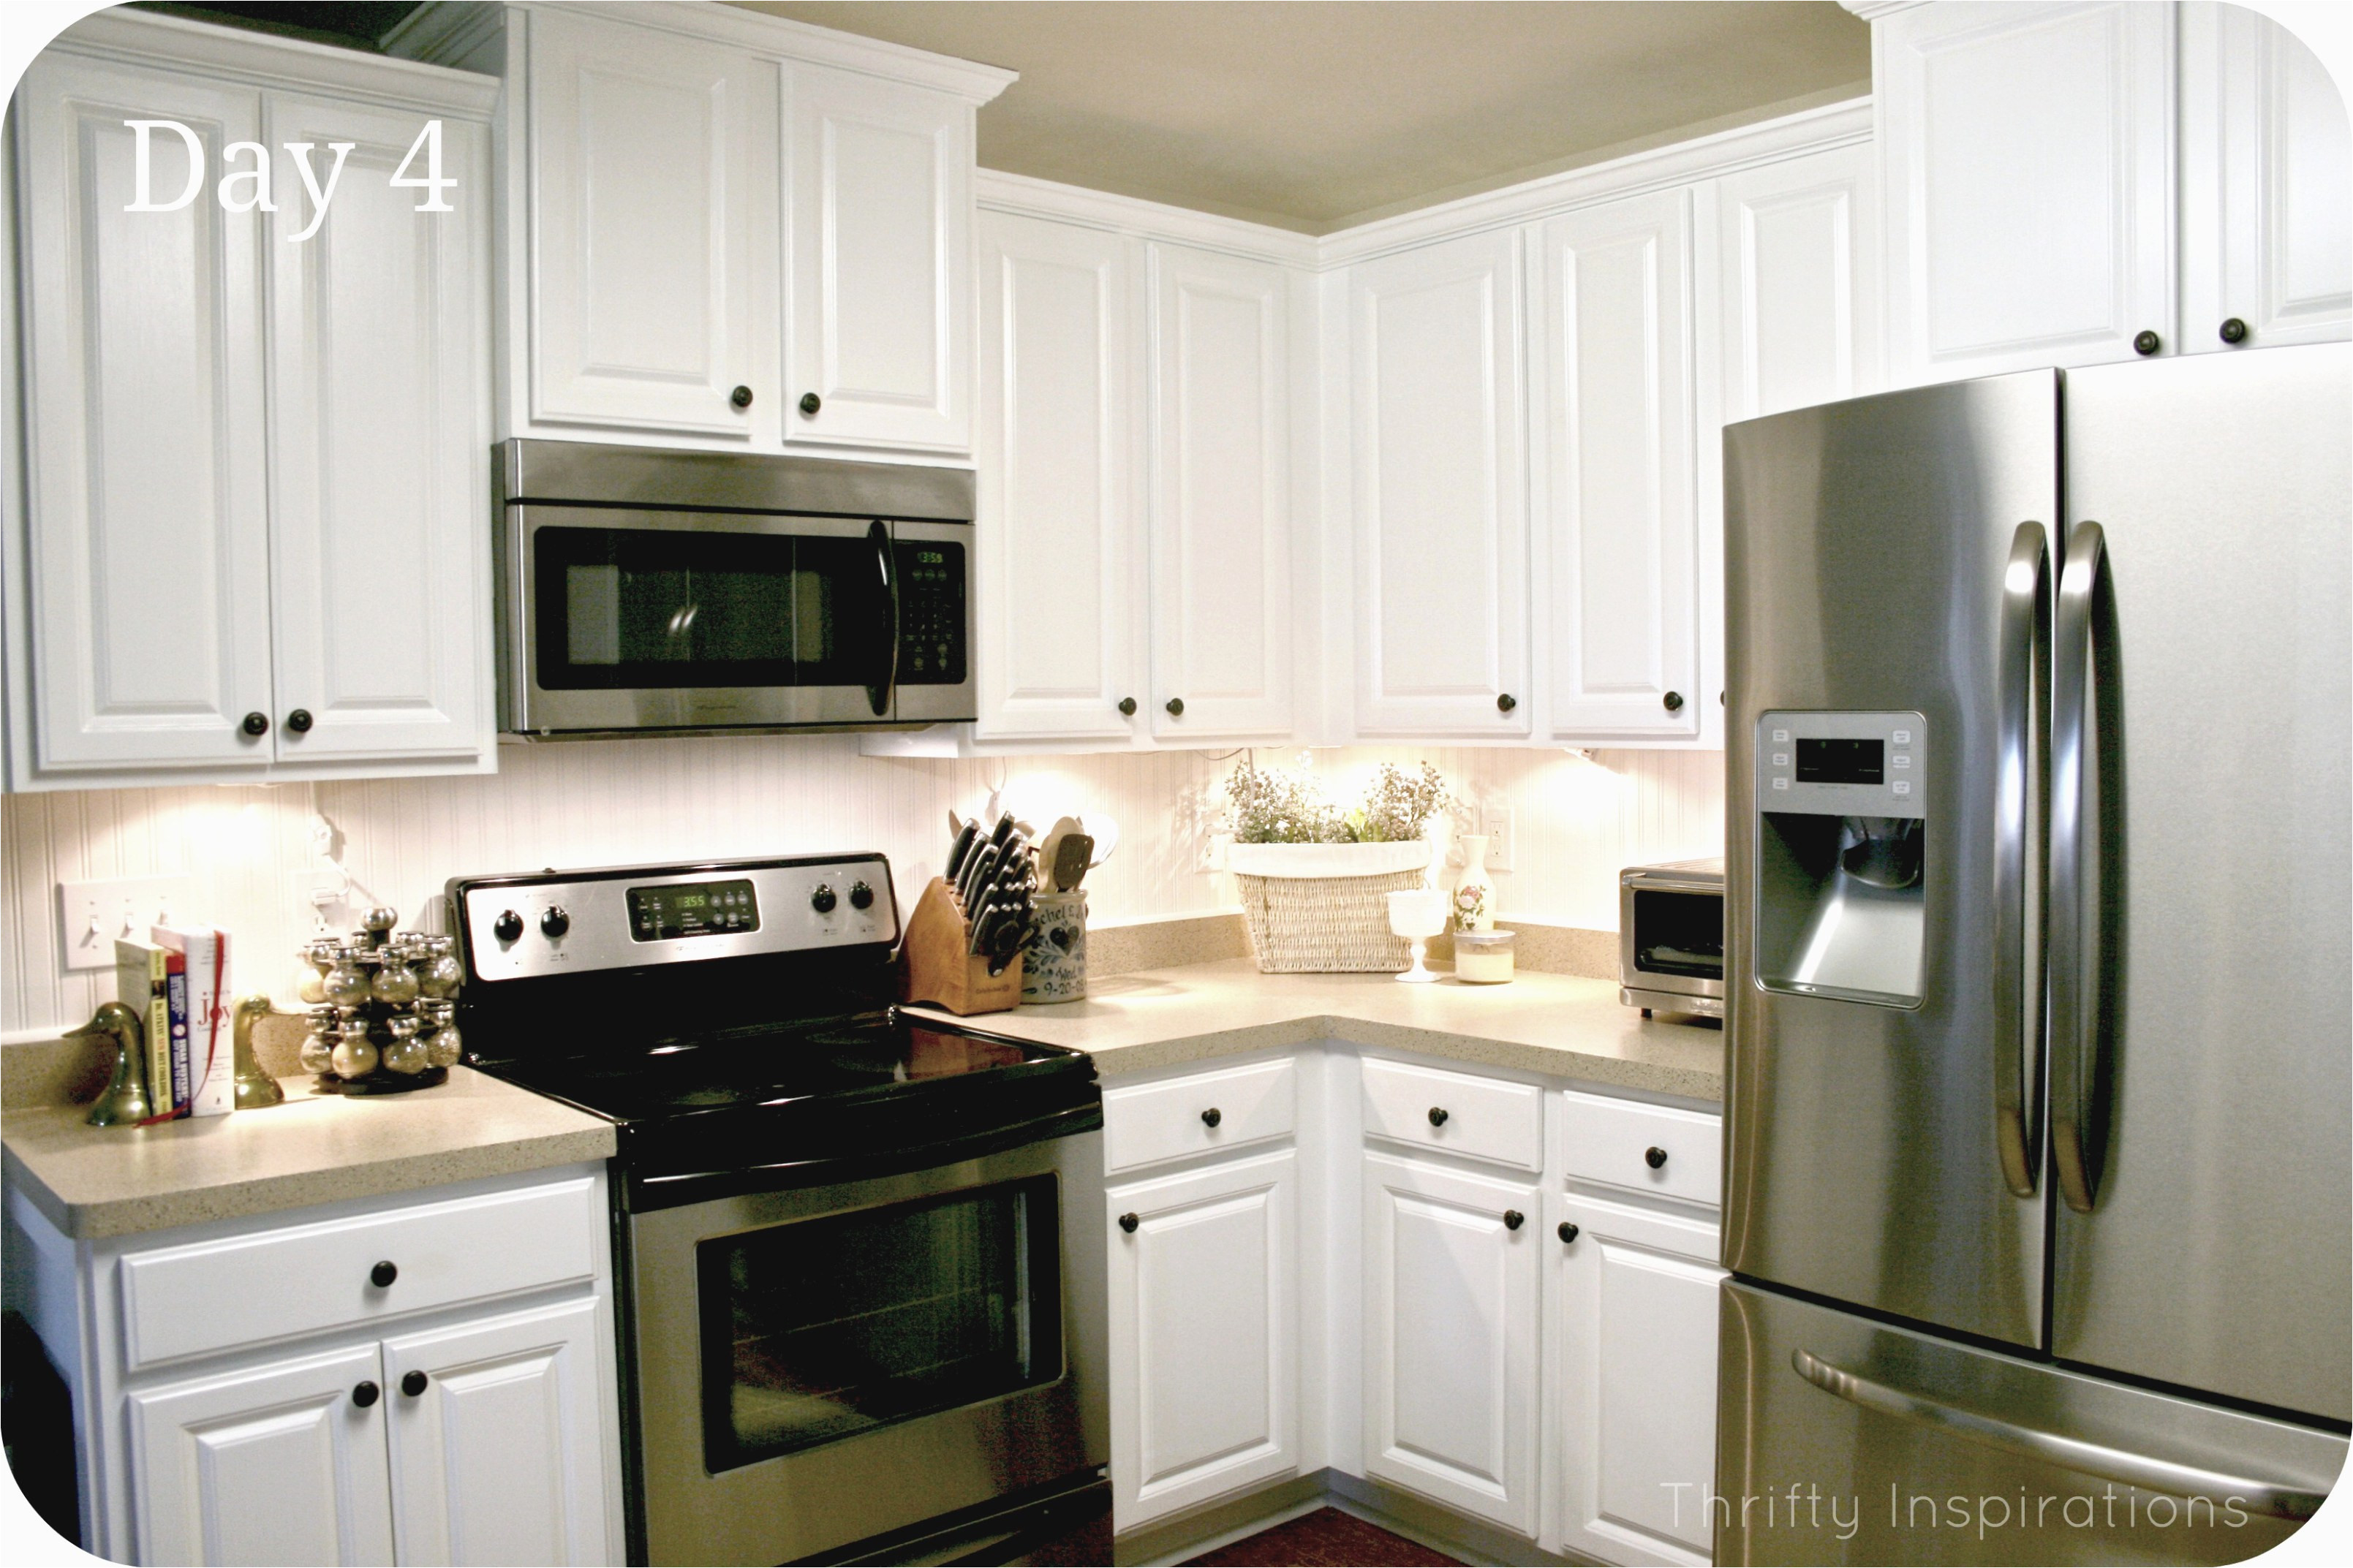 hampton bay kitchen cabinets home depot kitchen ideas from hampton bay kitchen cabinets image source thesocietyco com